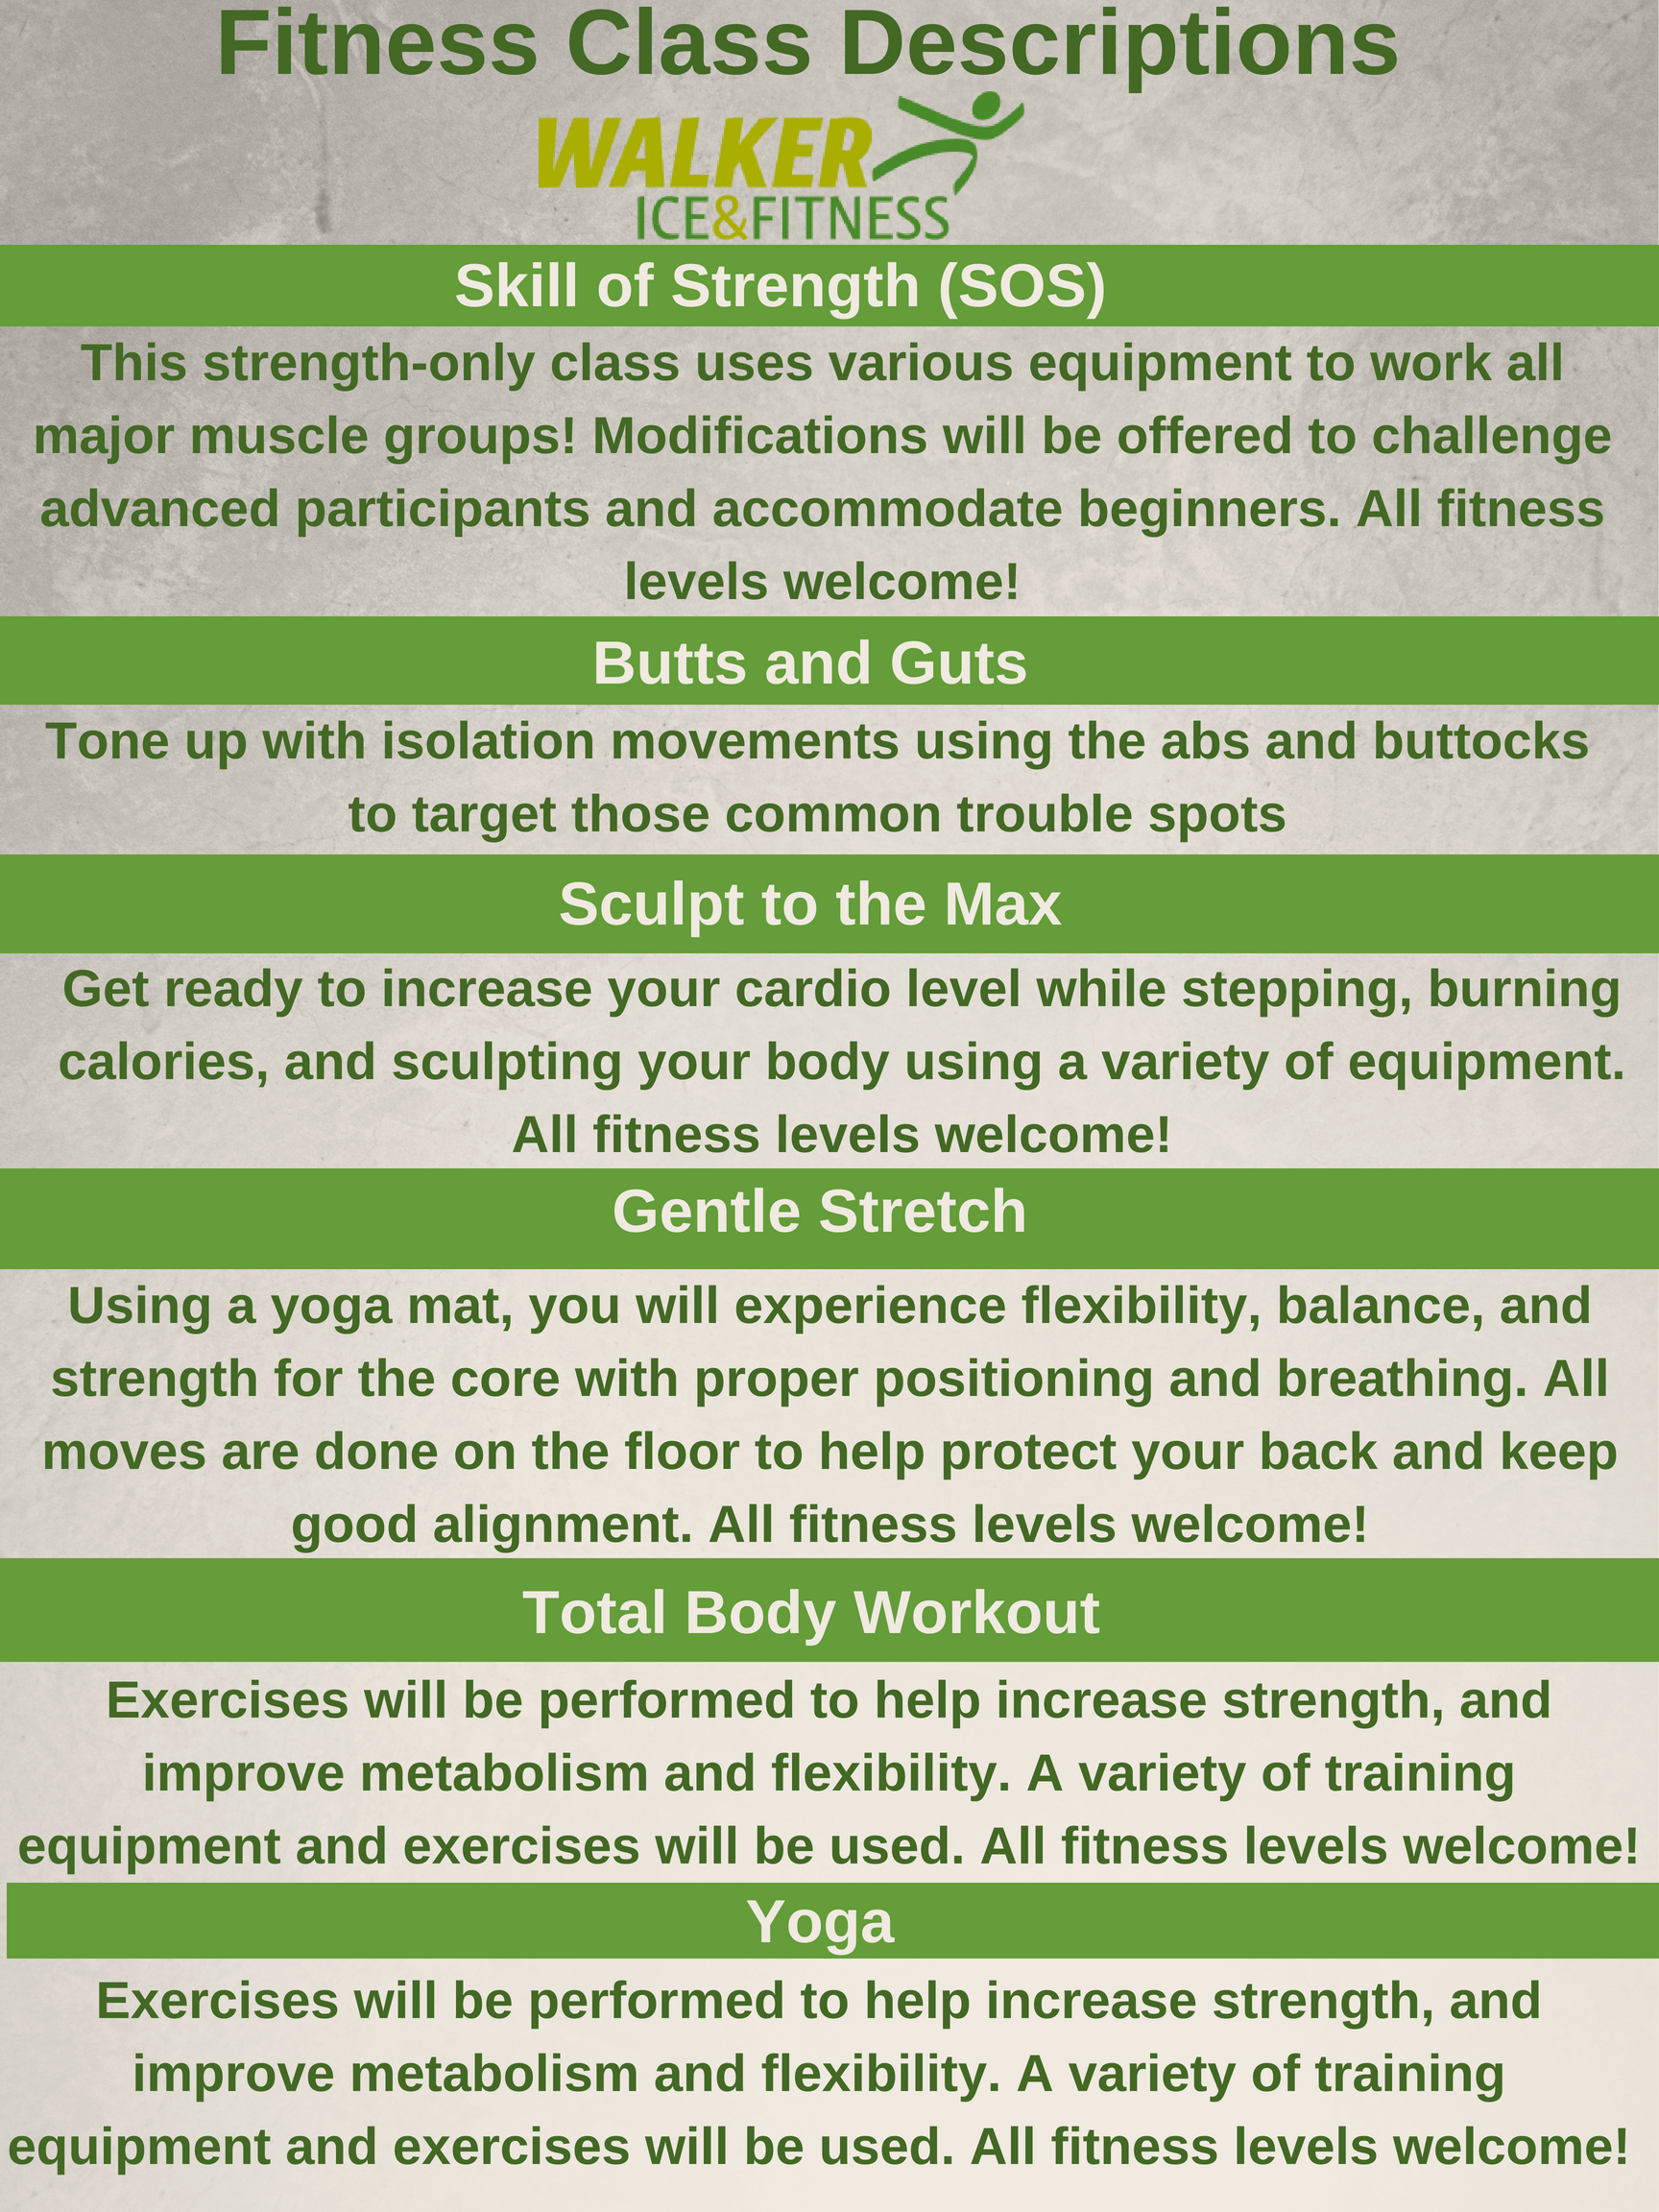 092818 - Fitness class descriptions - updated for fall winter